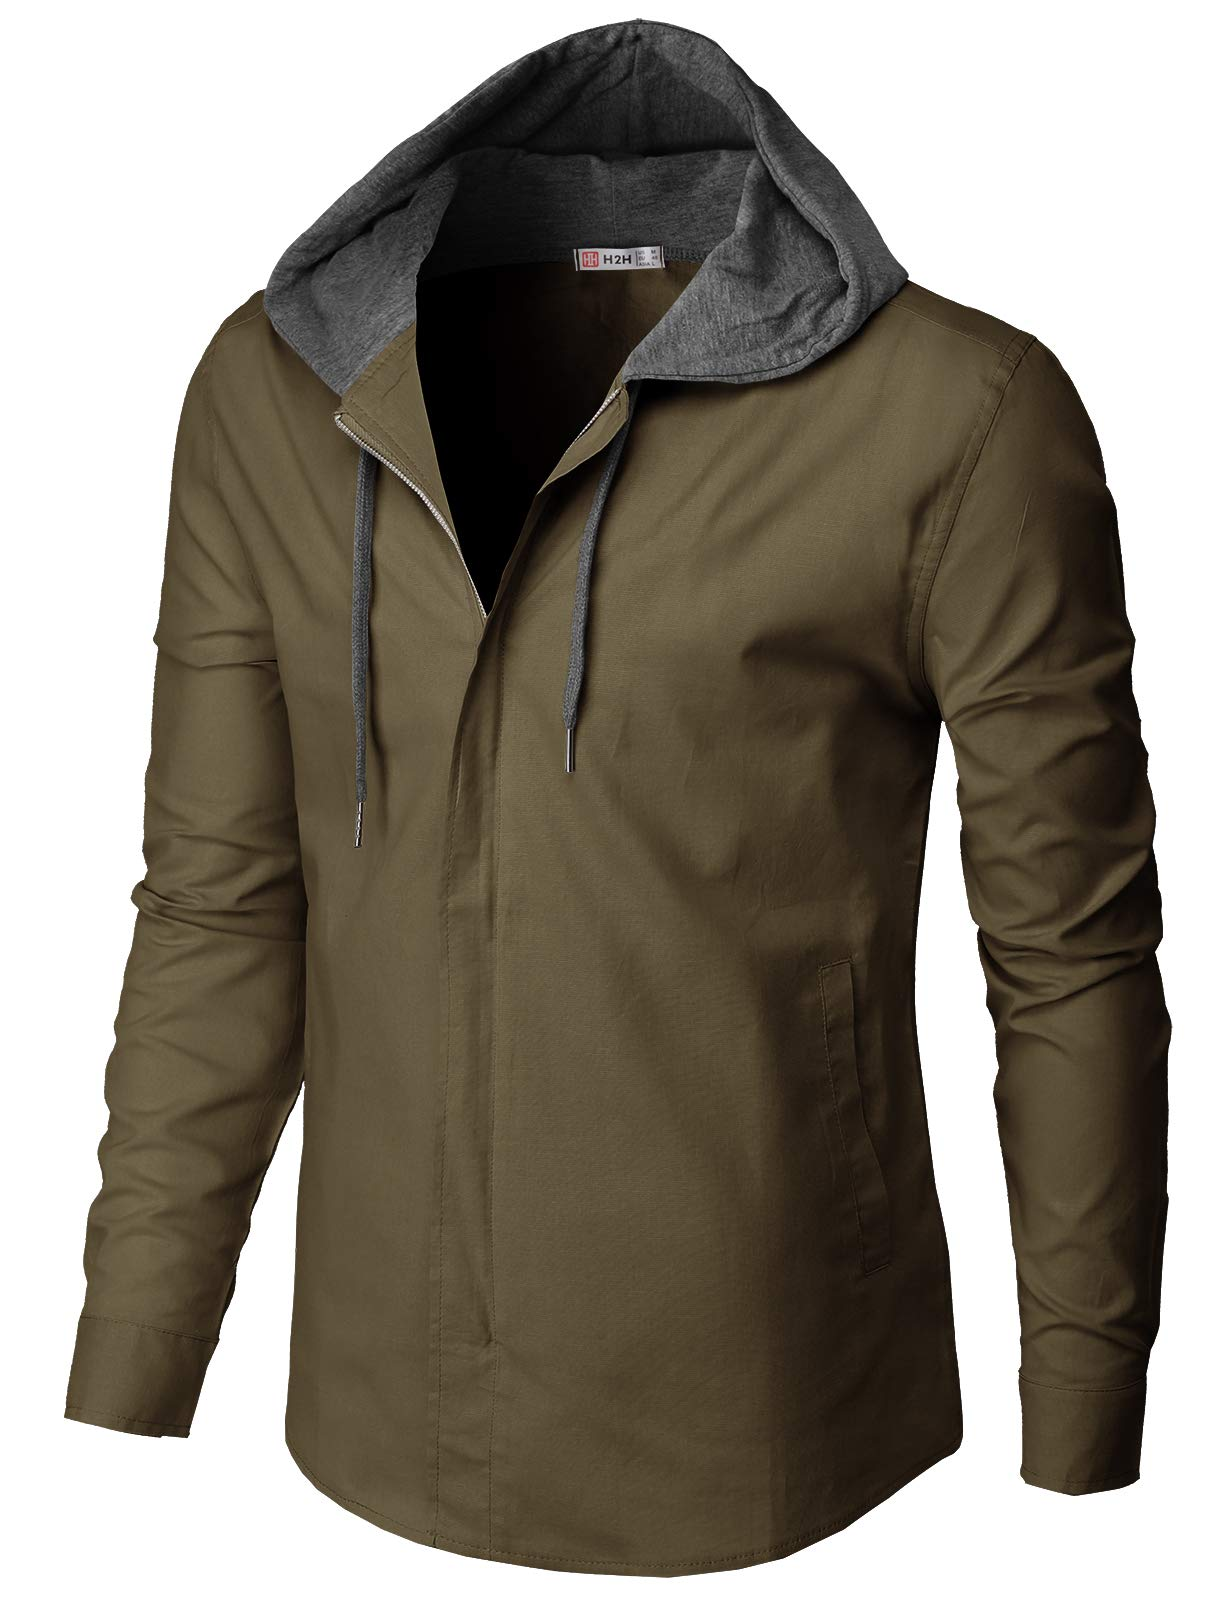 H2H Mens Casual Hoodie Jackets Long Sleeve Zip-up Outerwear Khaki US L/Asia XL (CMOJA116) by H2H